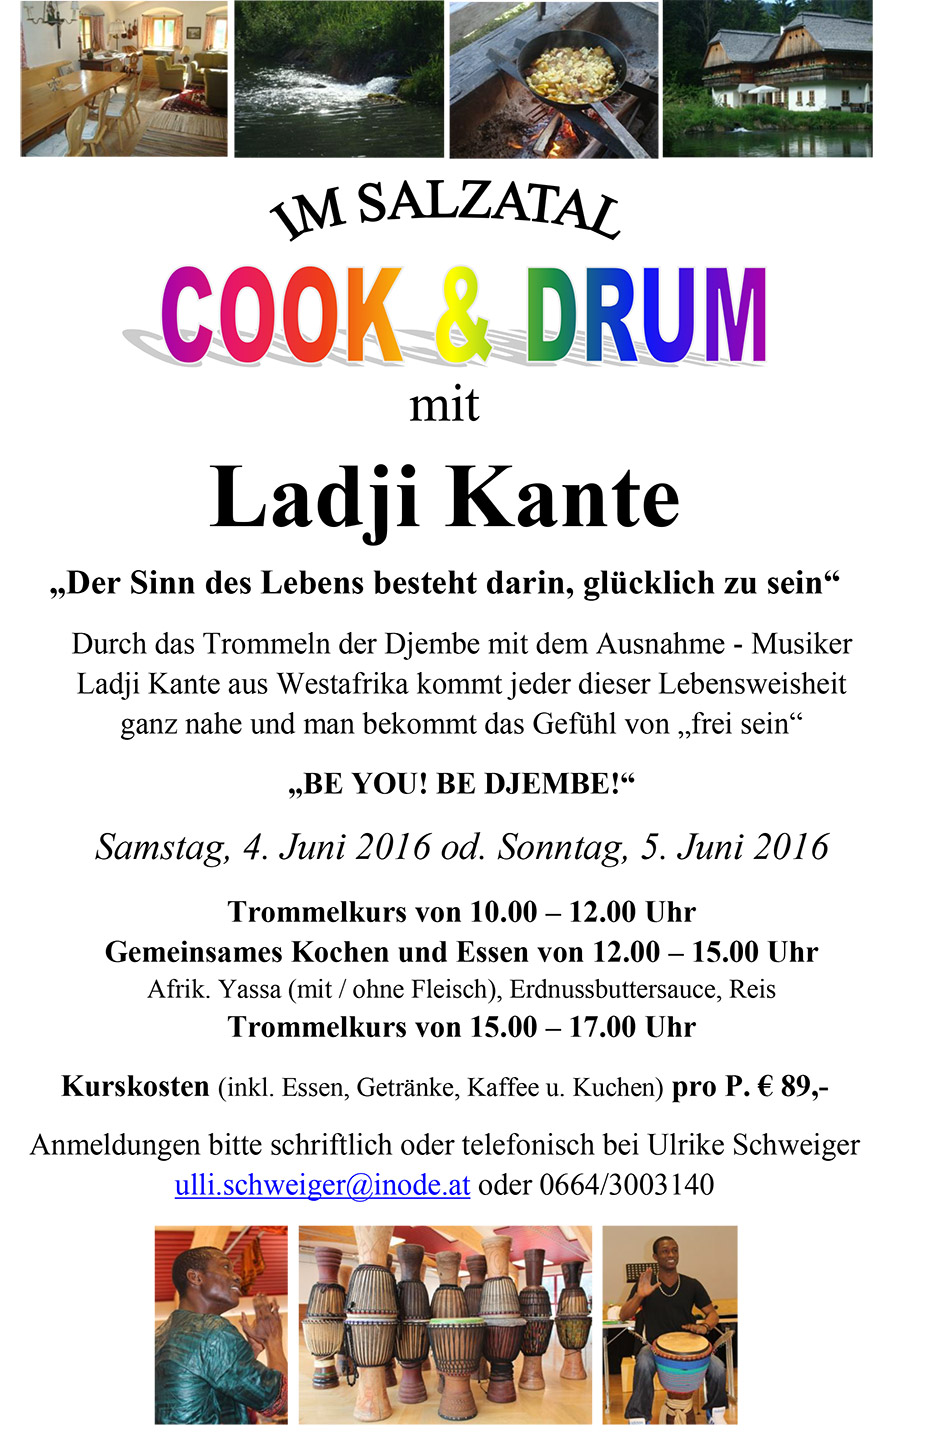 Cook-Drum-Ladij-Kandi-Salzatal_